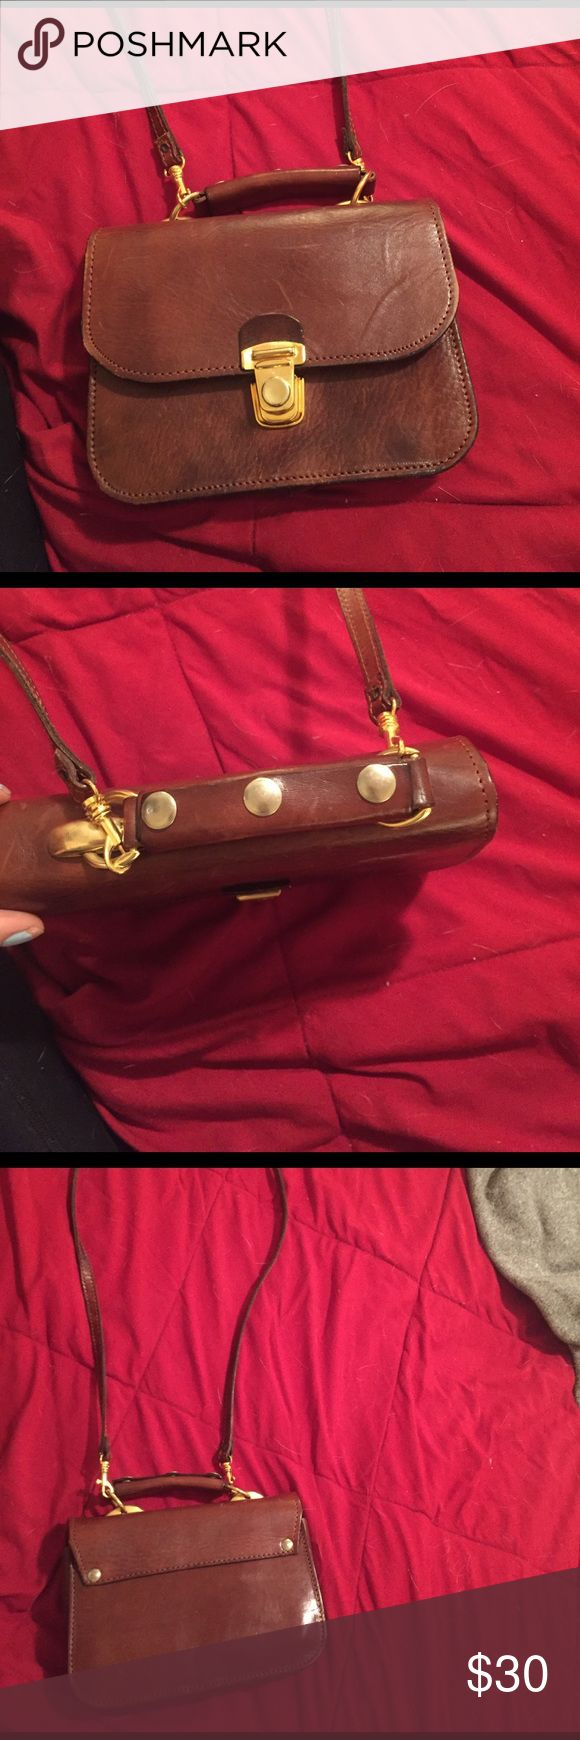 Real leather brown side purse Slight used, real leather, Warszawa/hetman Bags Shoulder Bags